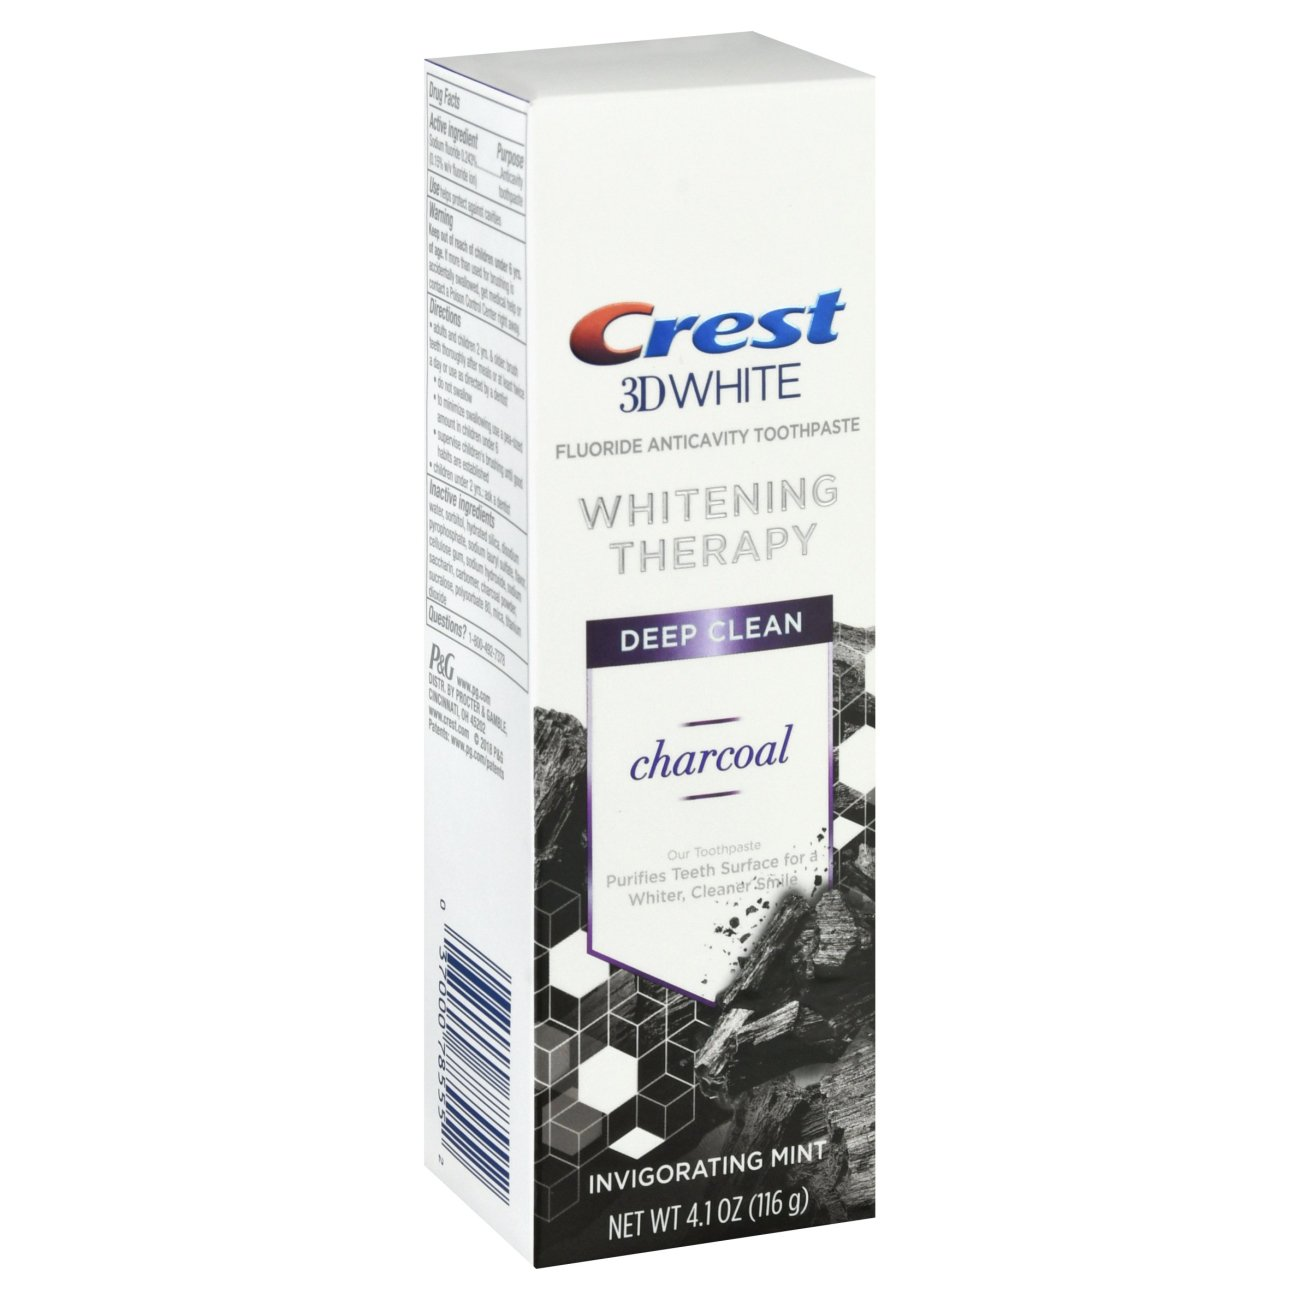 Crest 3d White Whitening Therapy Charcoal Deep Clean Fluoride